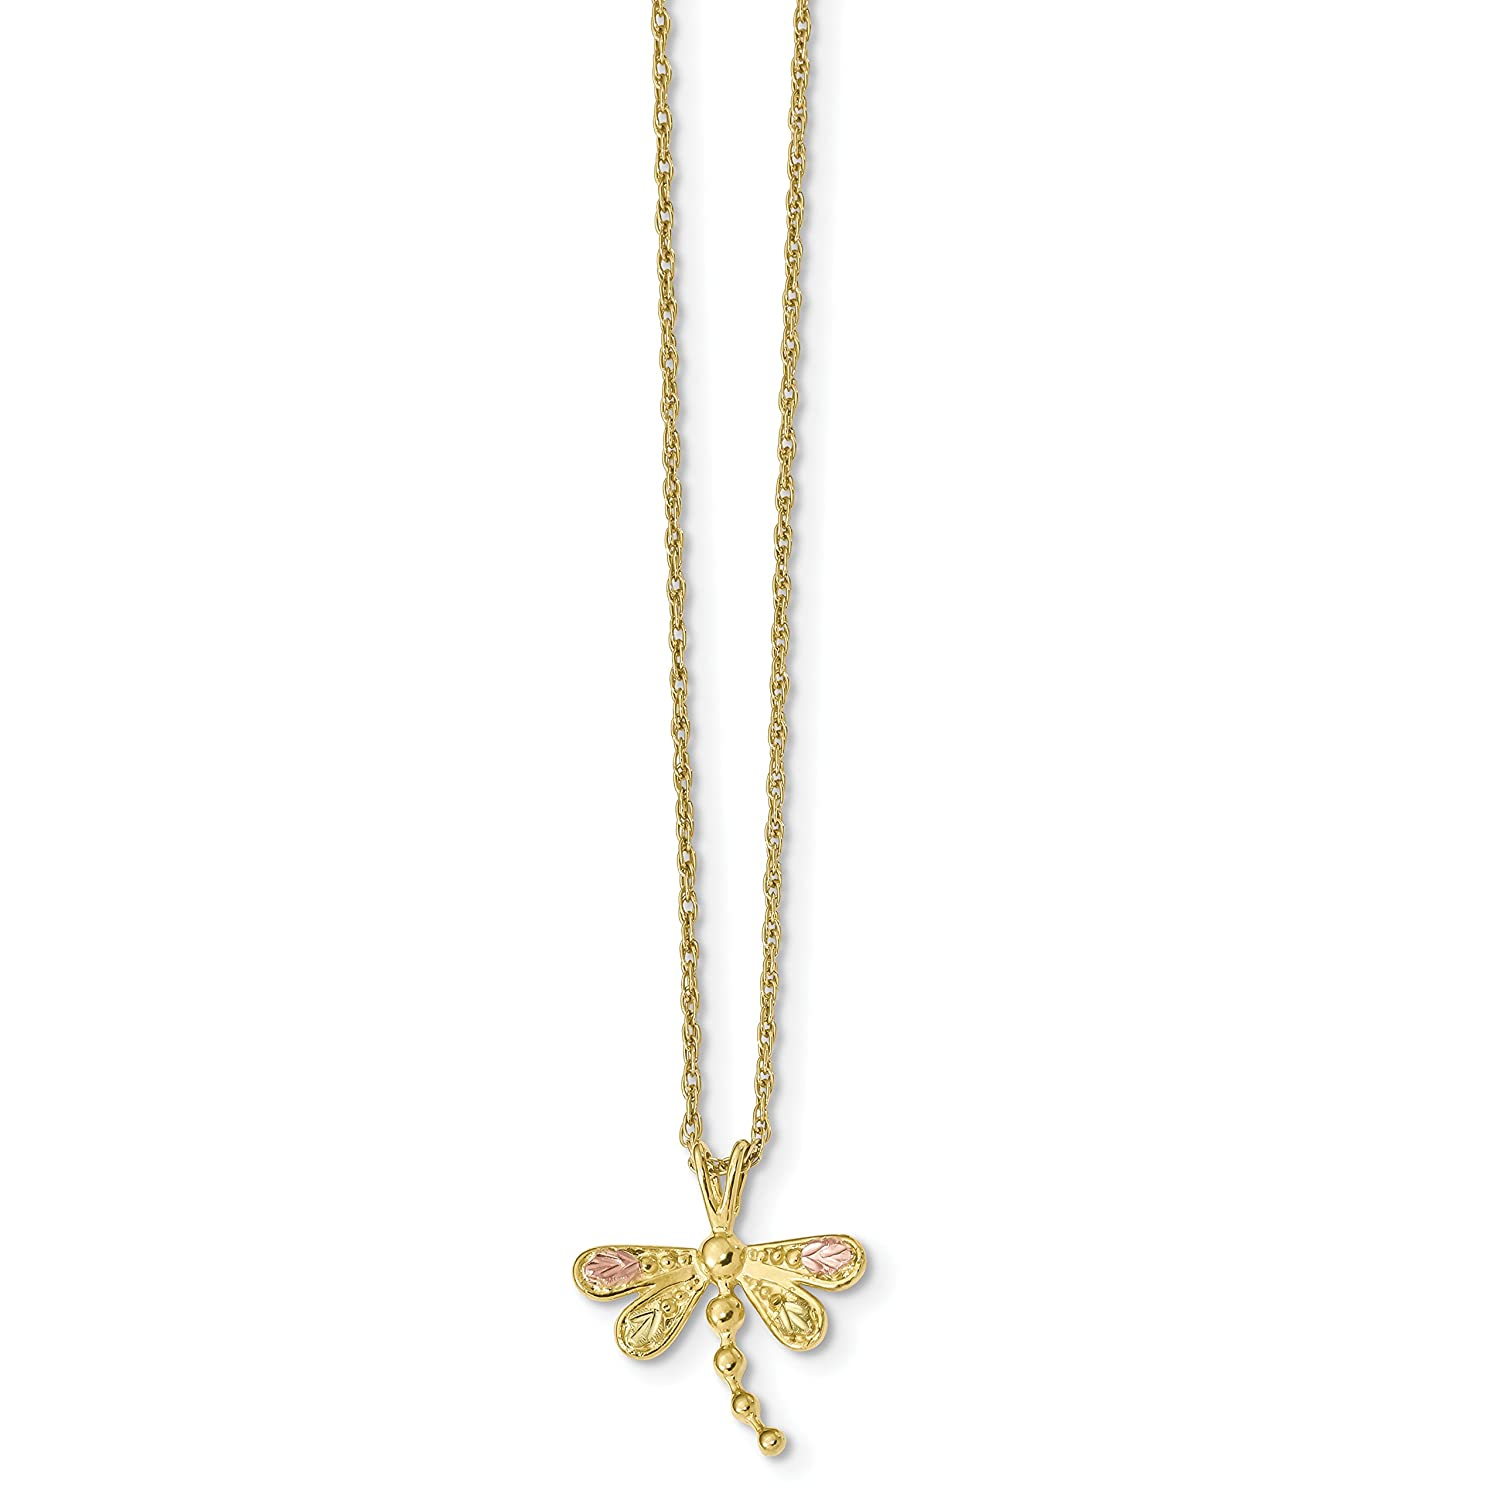 10k Tri-Color Gold Black Hills Dragonfly Necklace 18inch